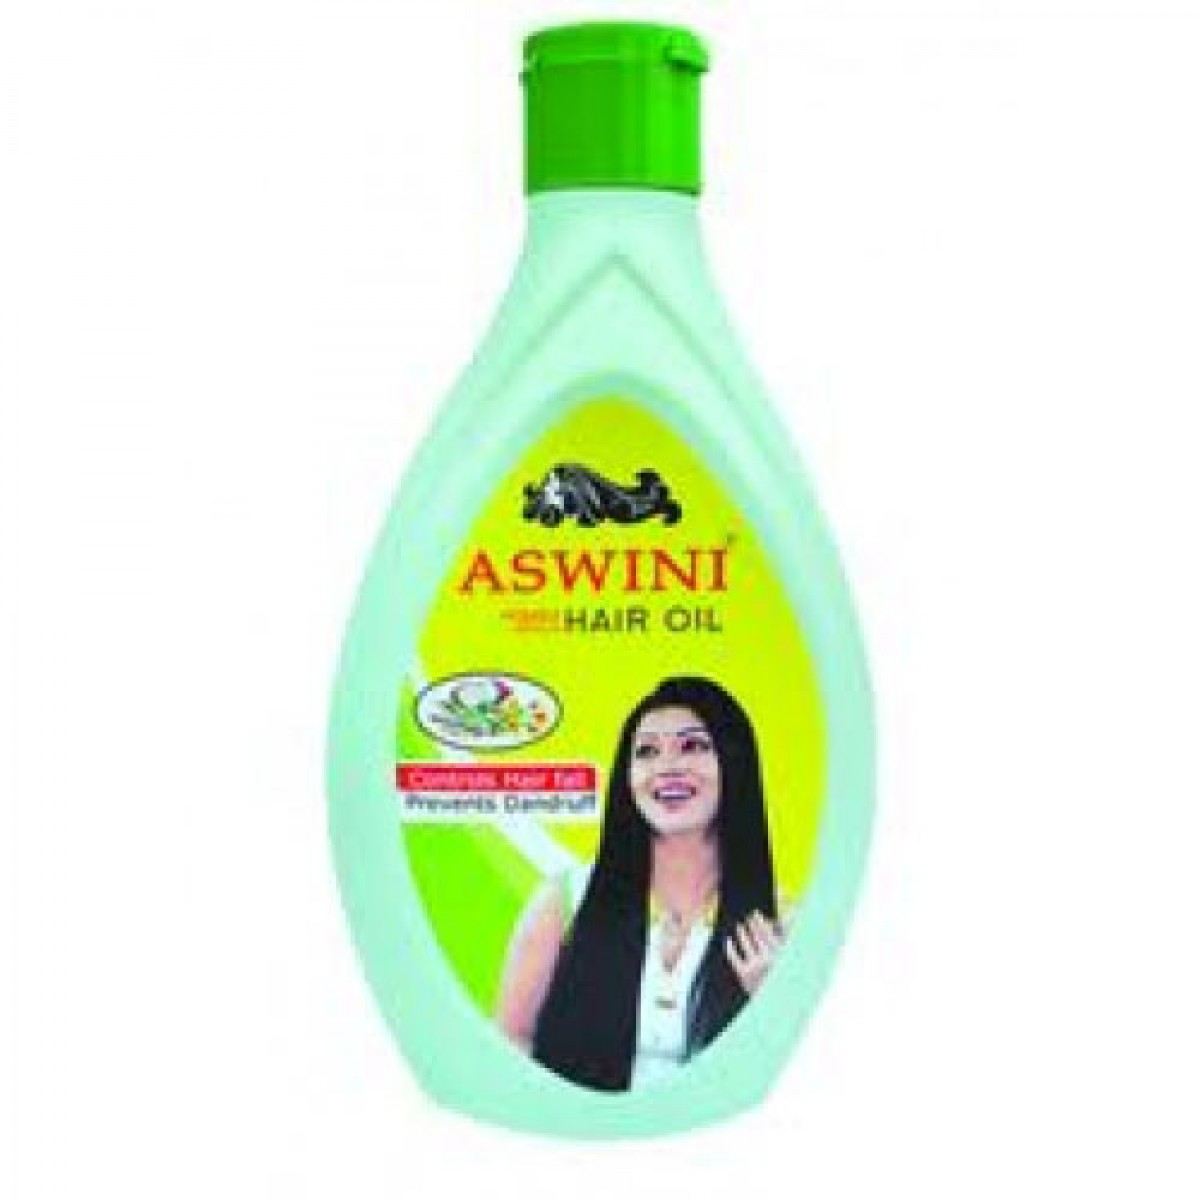 Aswini hair oil 200ml 16min online medical store india